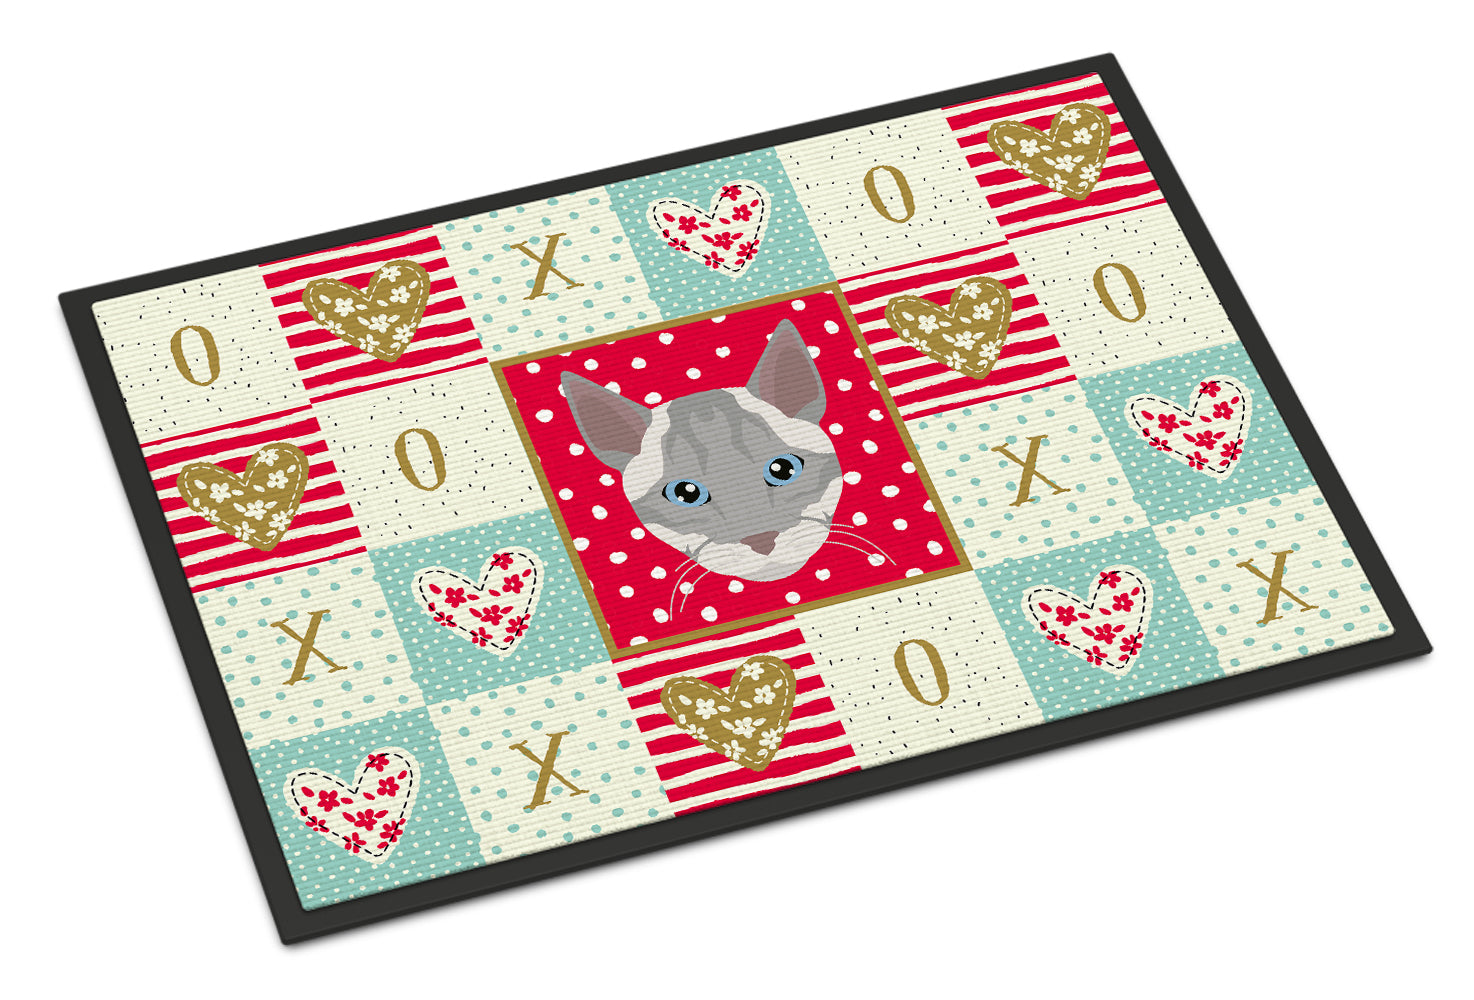 Ojos Azules Cat Love Indoor or Outdoor Mat 18x27 CK5139MAT by Caroline's Treasures